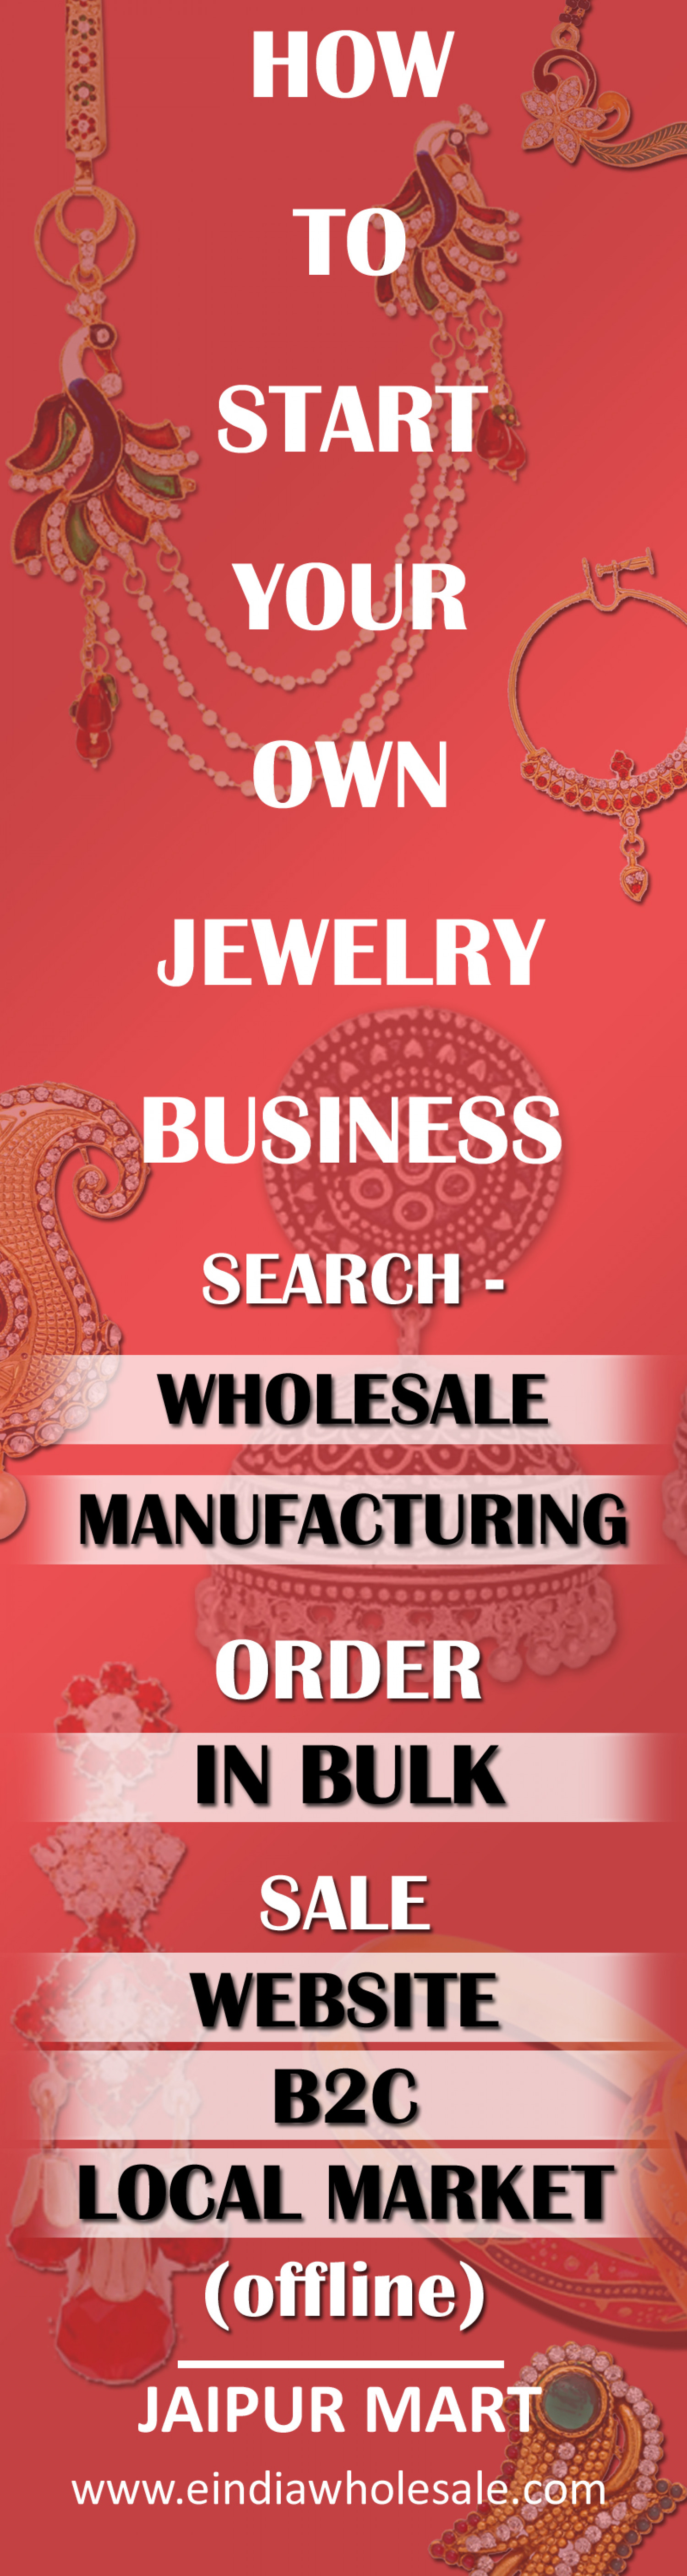 How to Start Jewelry Busines Infographic